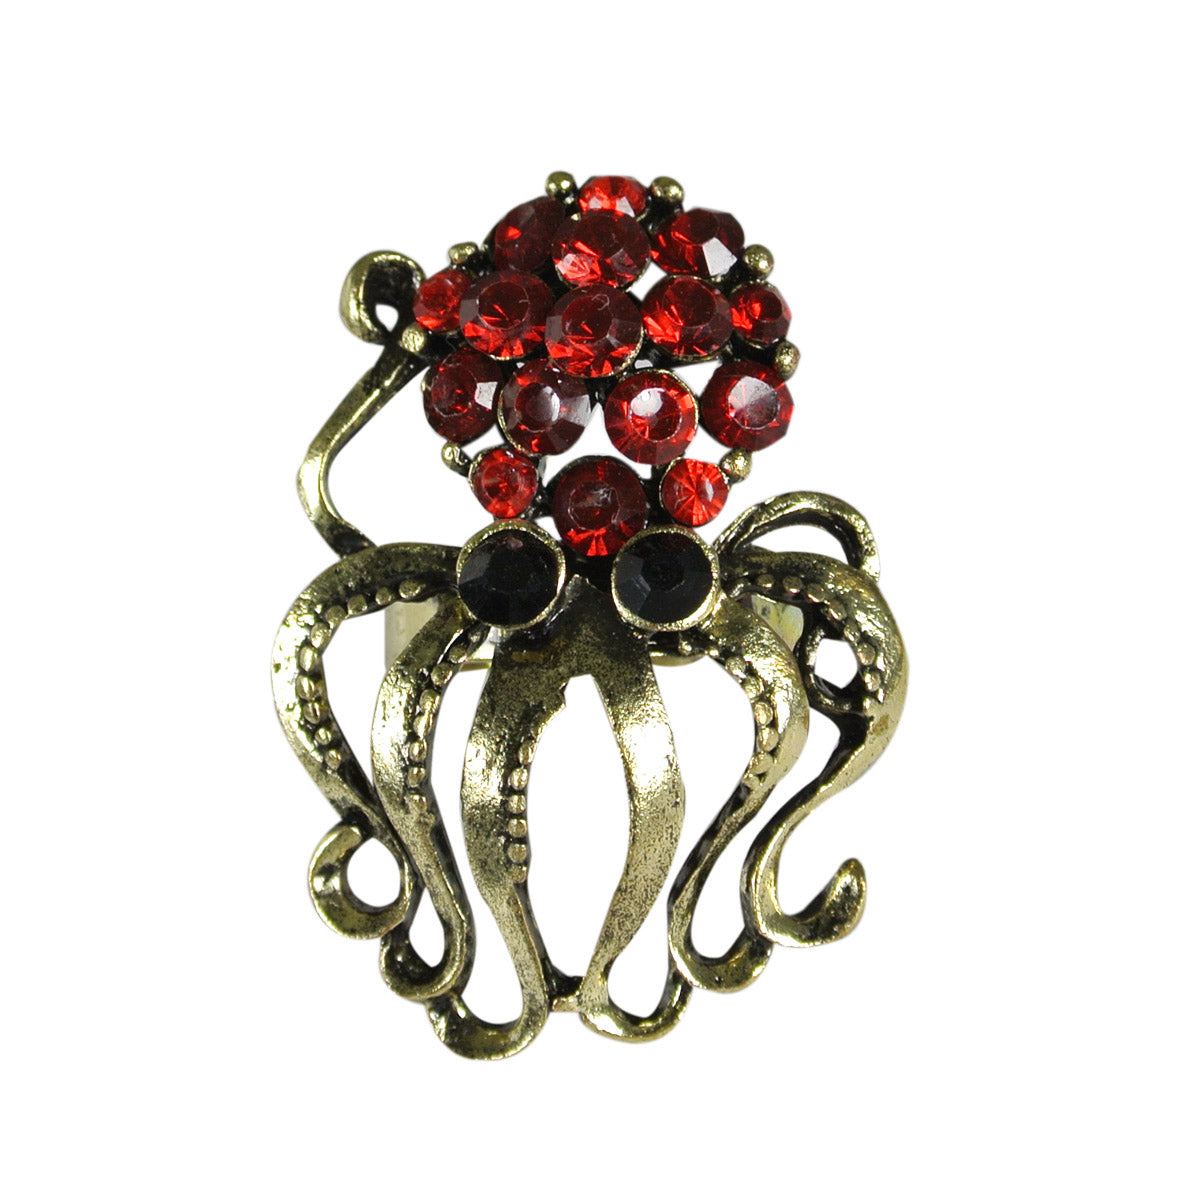 Vintage Crystal Octopus Adjustable Ring